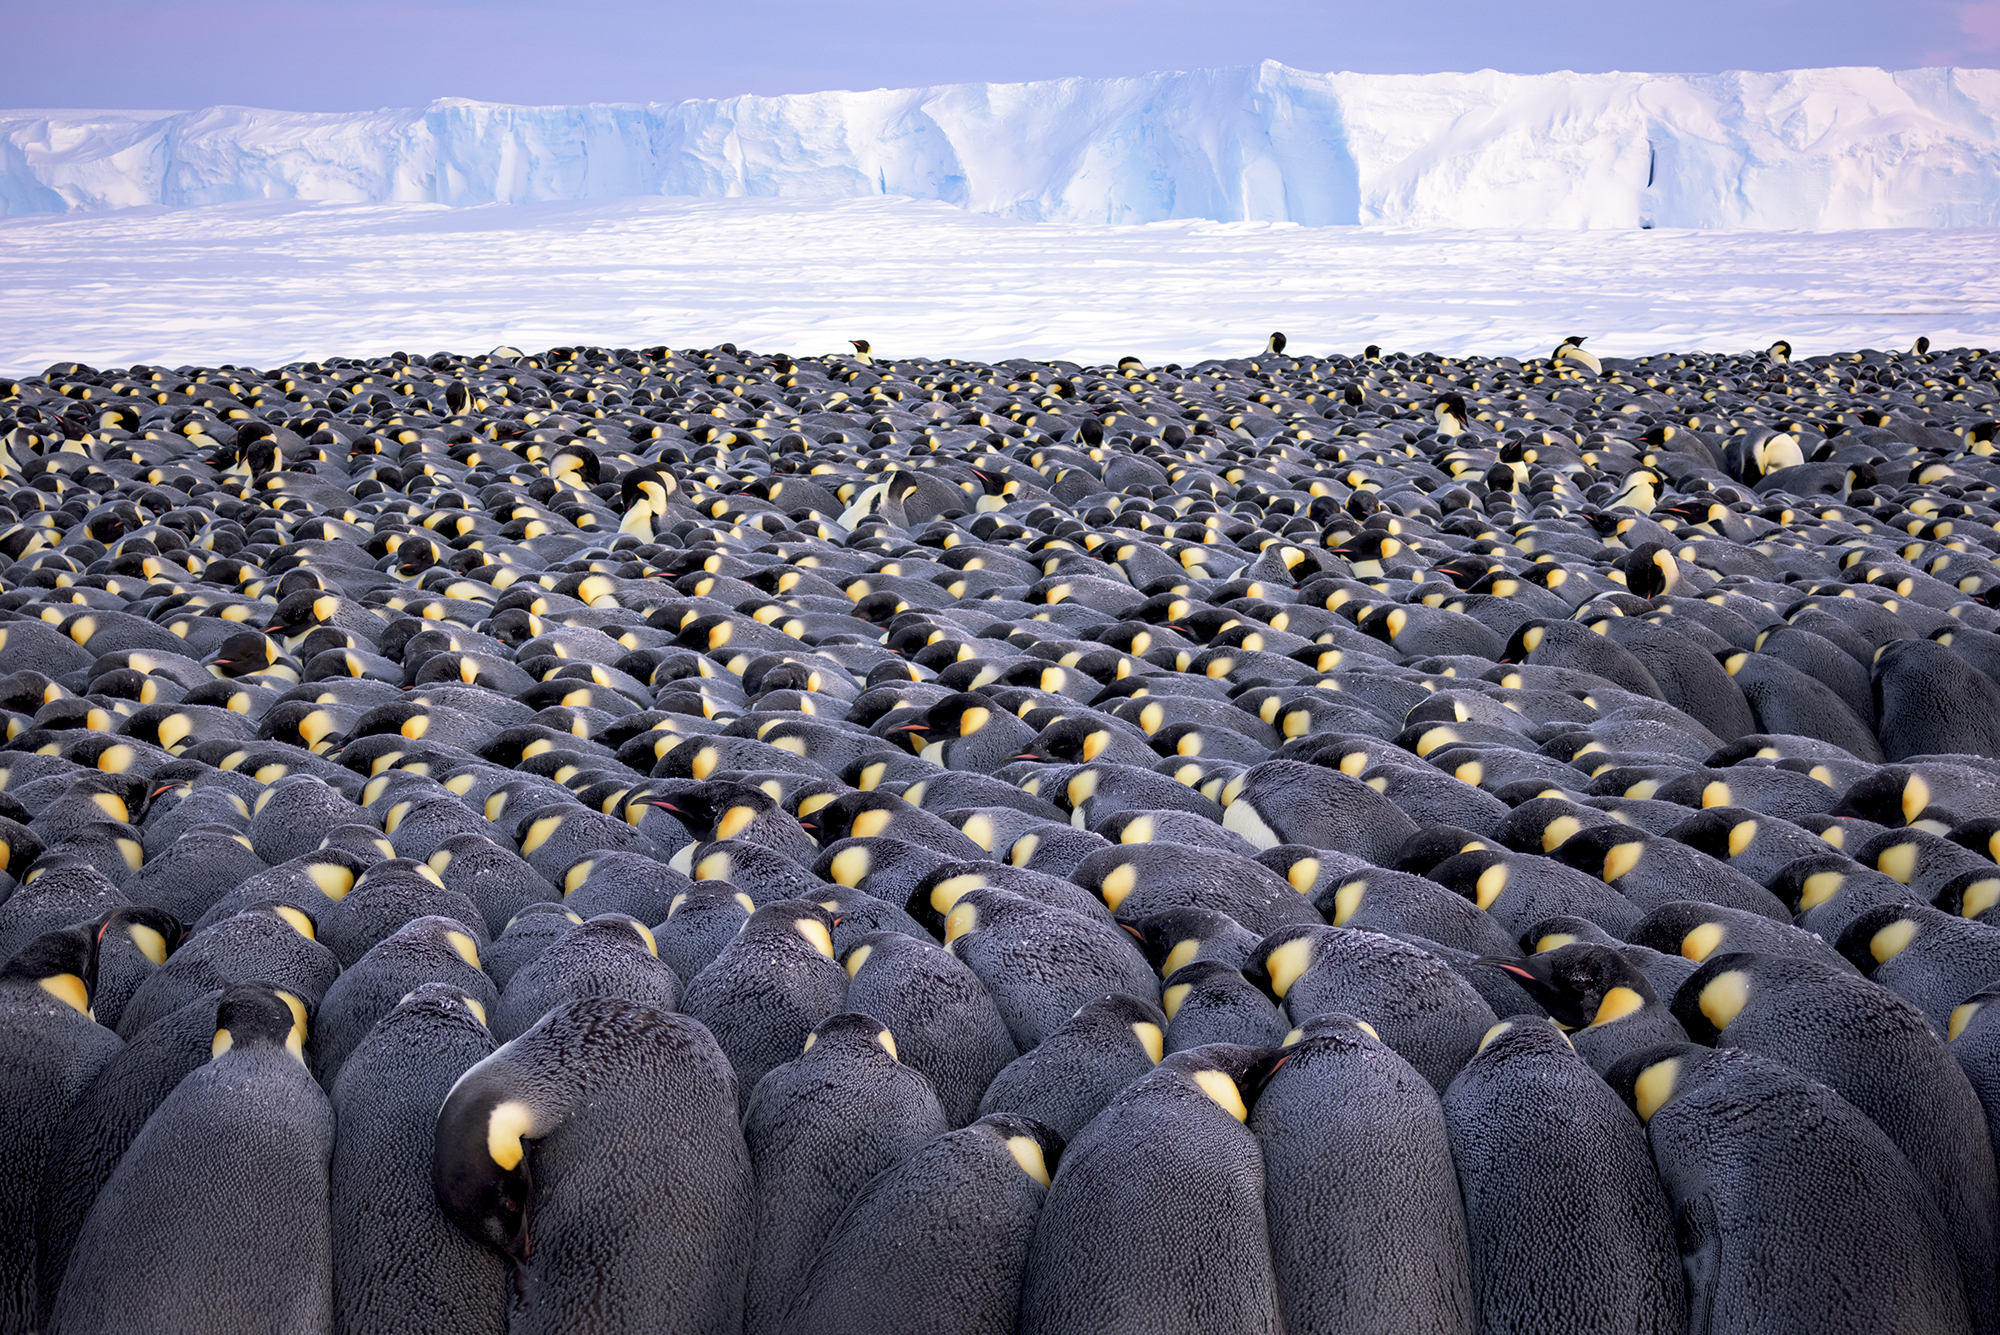 More than 5,000 male emperor penguins huddle against the wind and late winter cold on the sea ice of Antarctica's Atka Bay, in front of the Ekström Ice Shelf